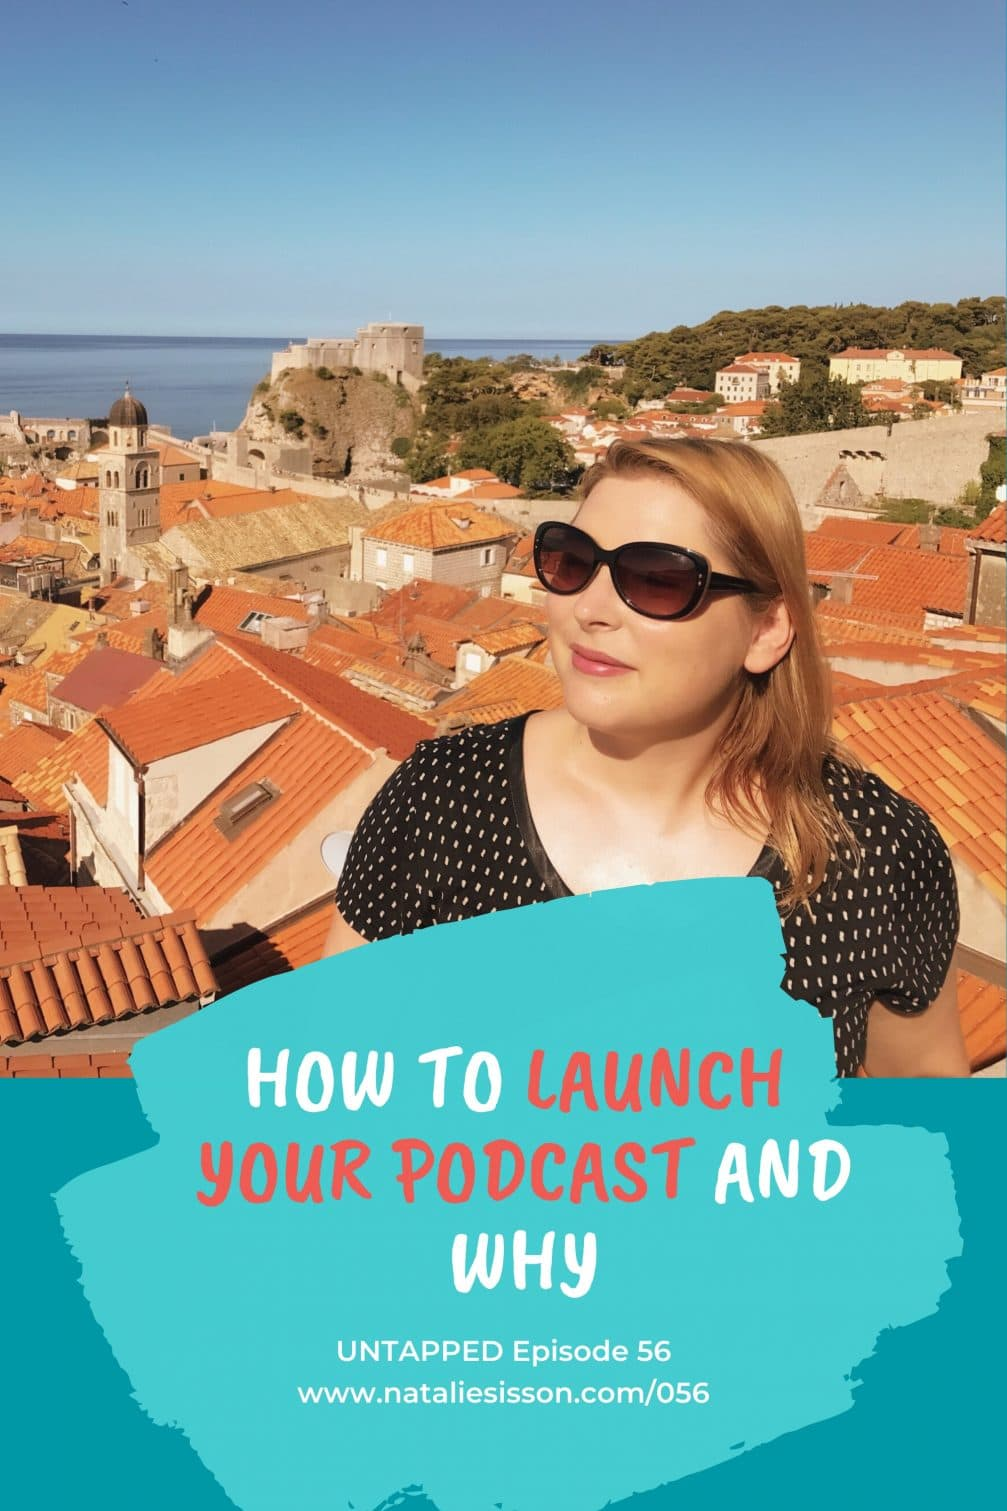 Eps 57: How to Launch Your Podcast and Why